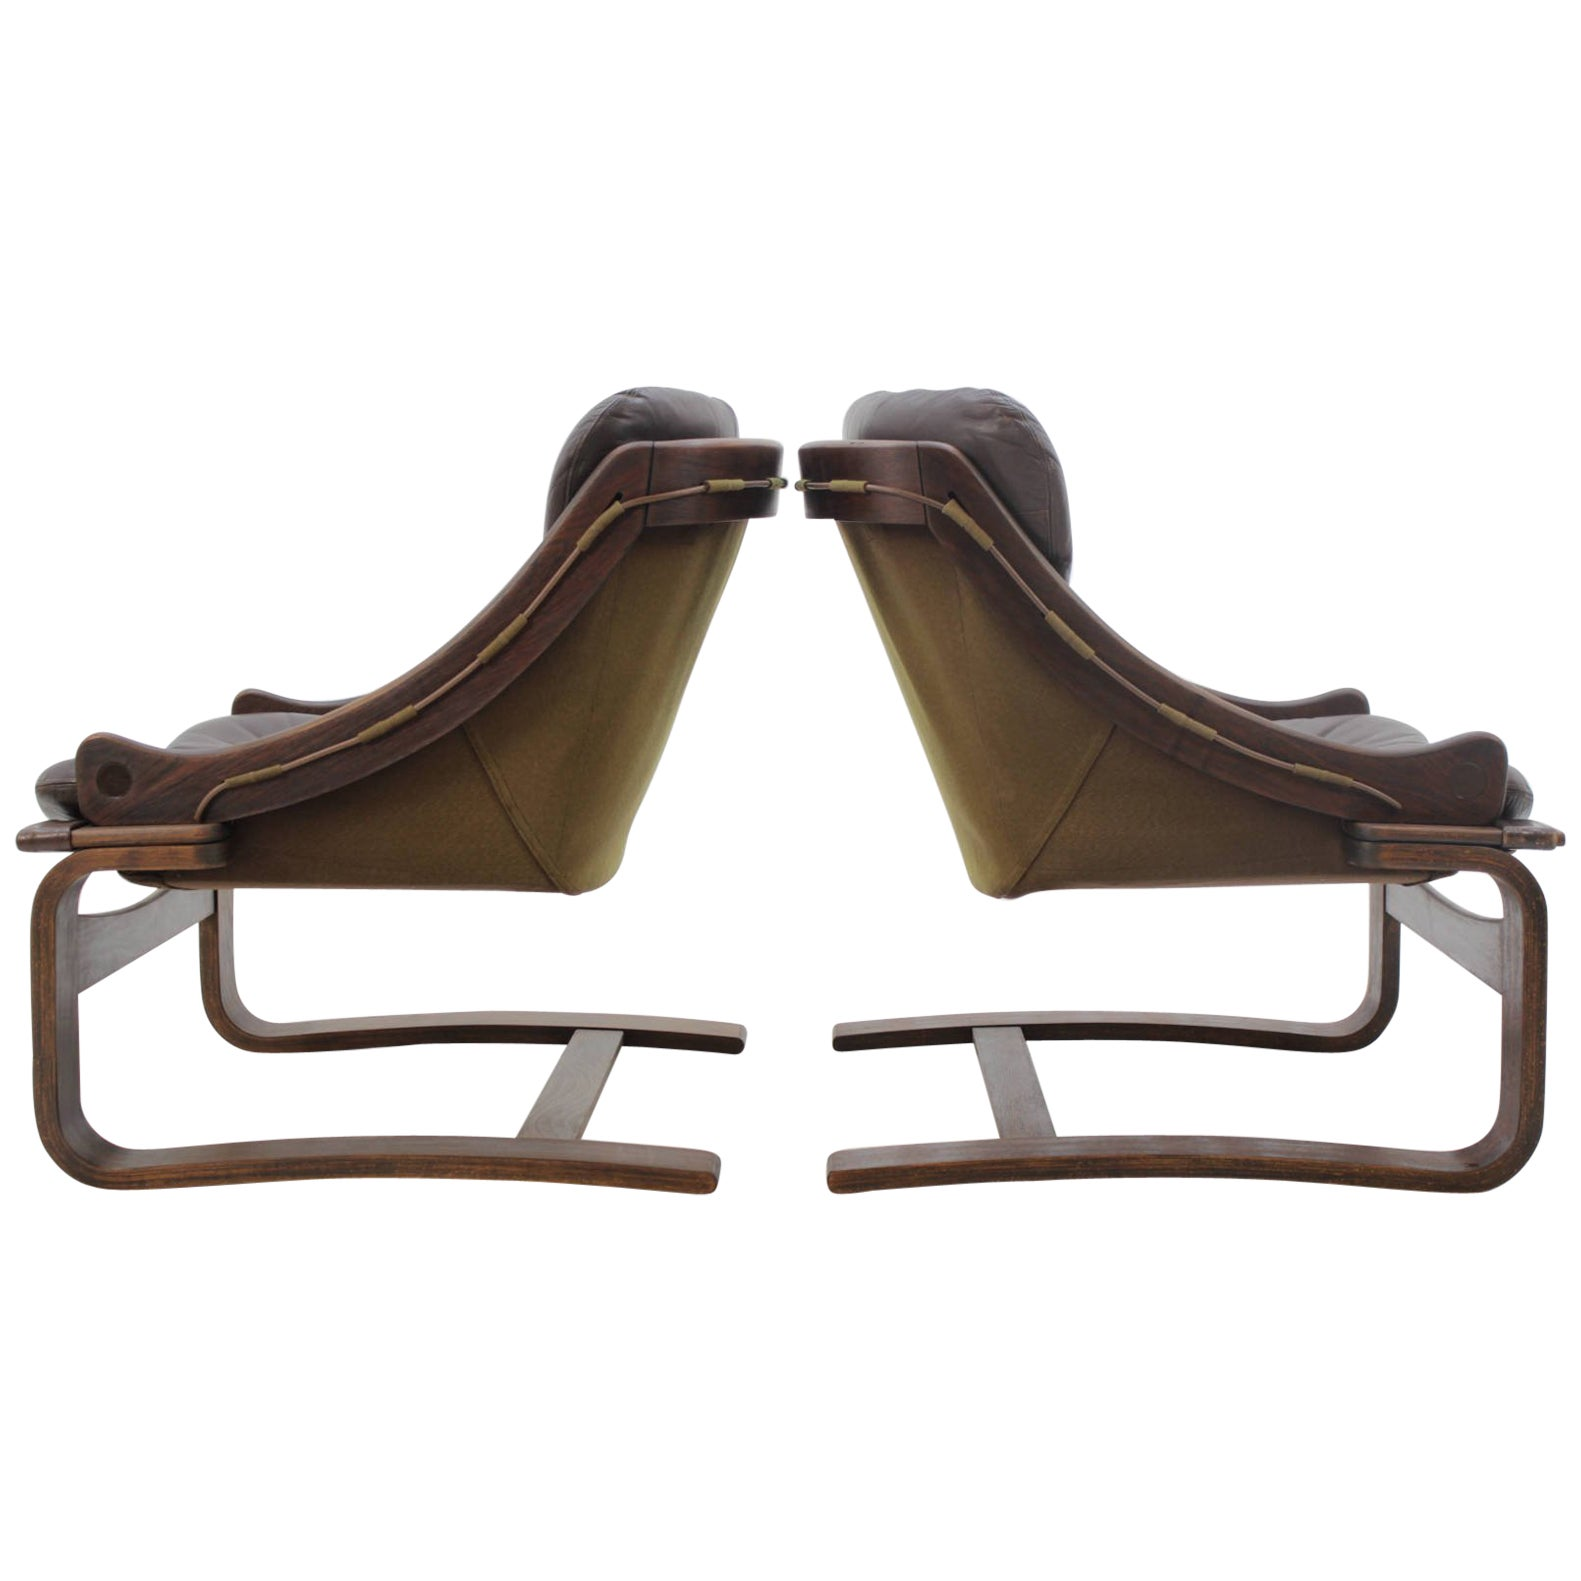 Scandinavian Möbel 1970s Scandinavian Bentwood Leather Lounge Chair By Ake Fribytter For Nelo Mobel